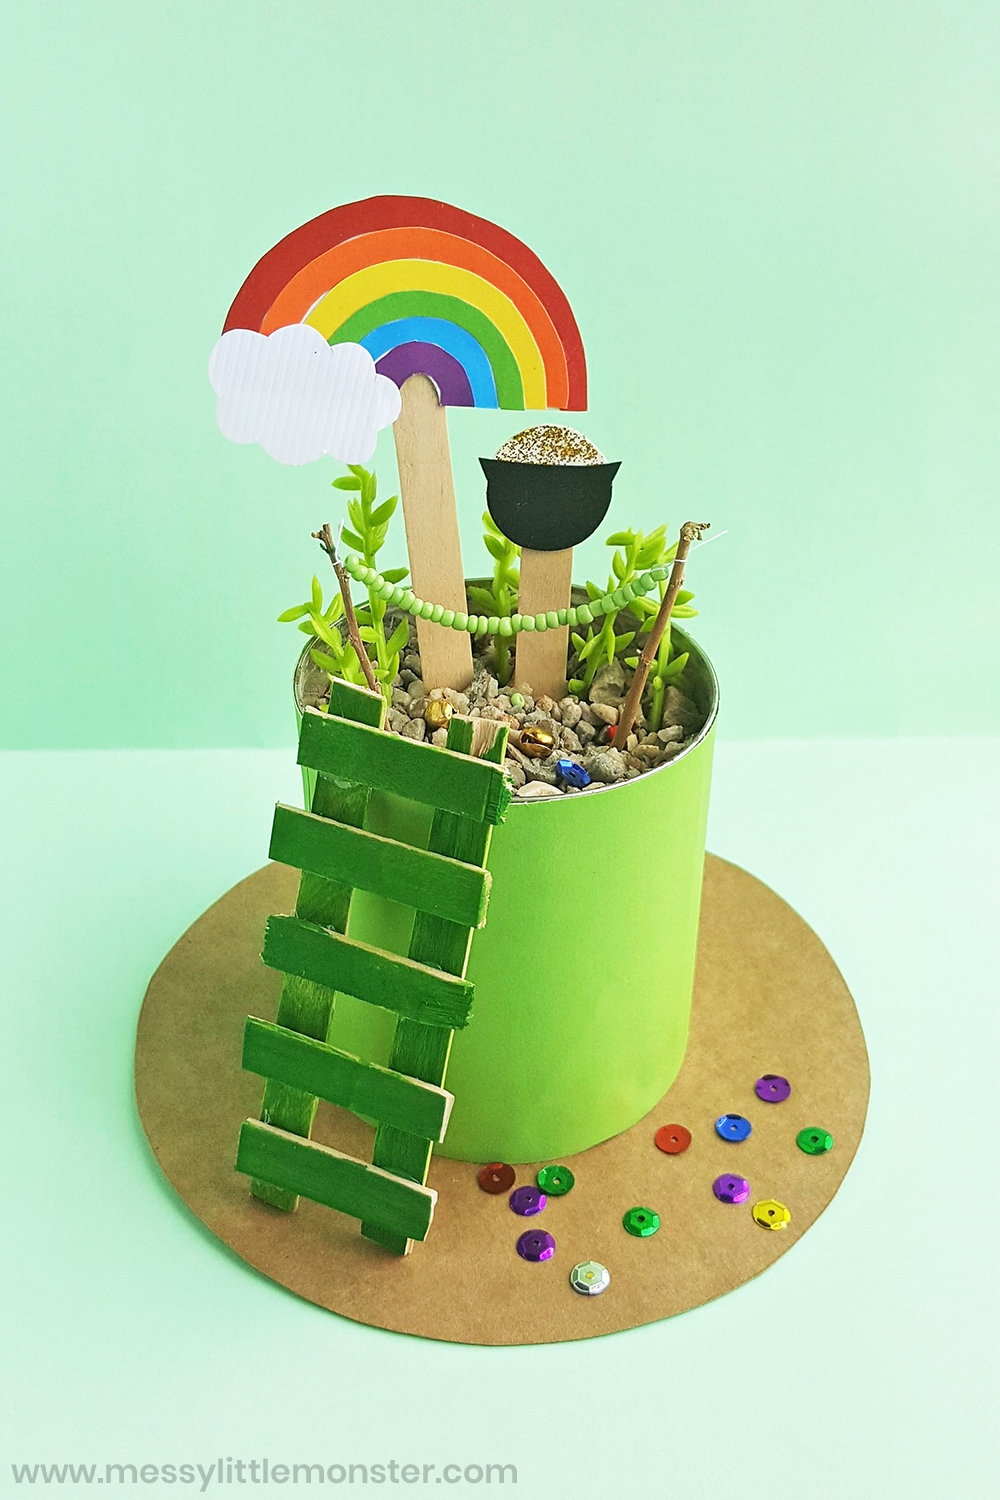 How to build a leprechaun trap as a St Patricks day craft for kids.